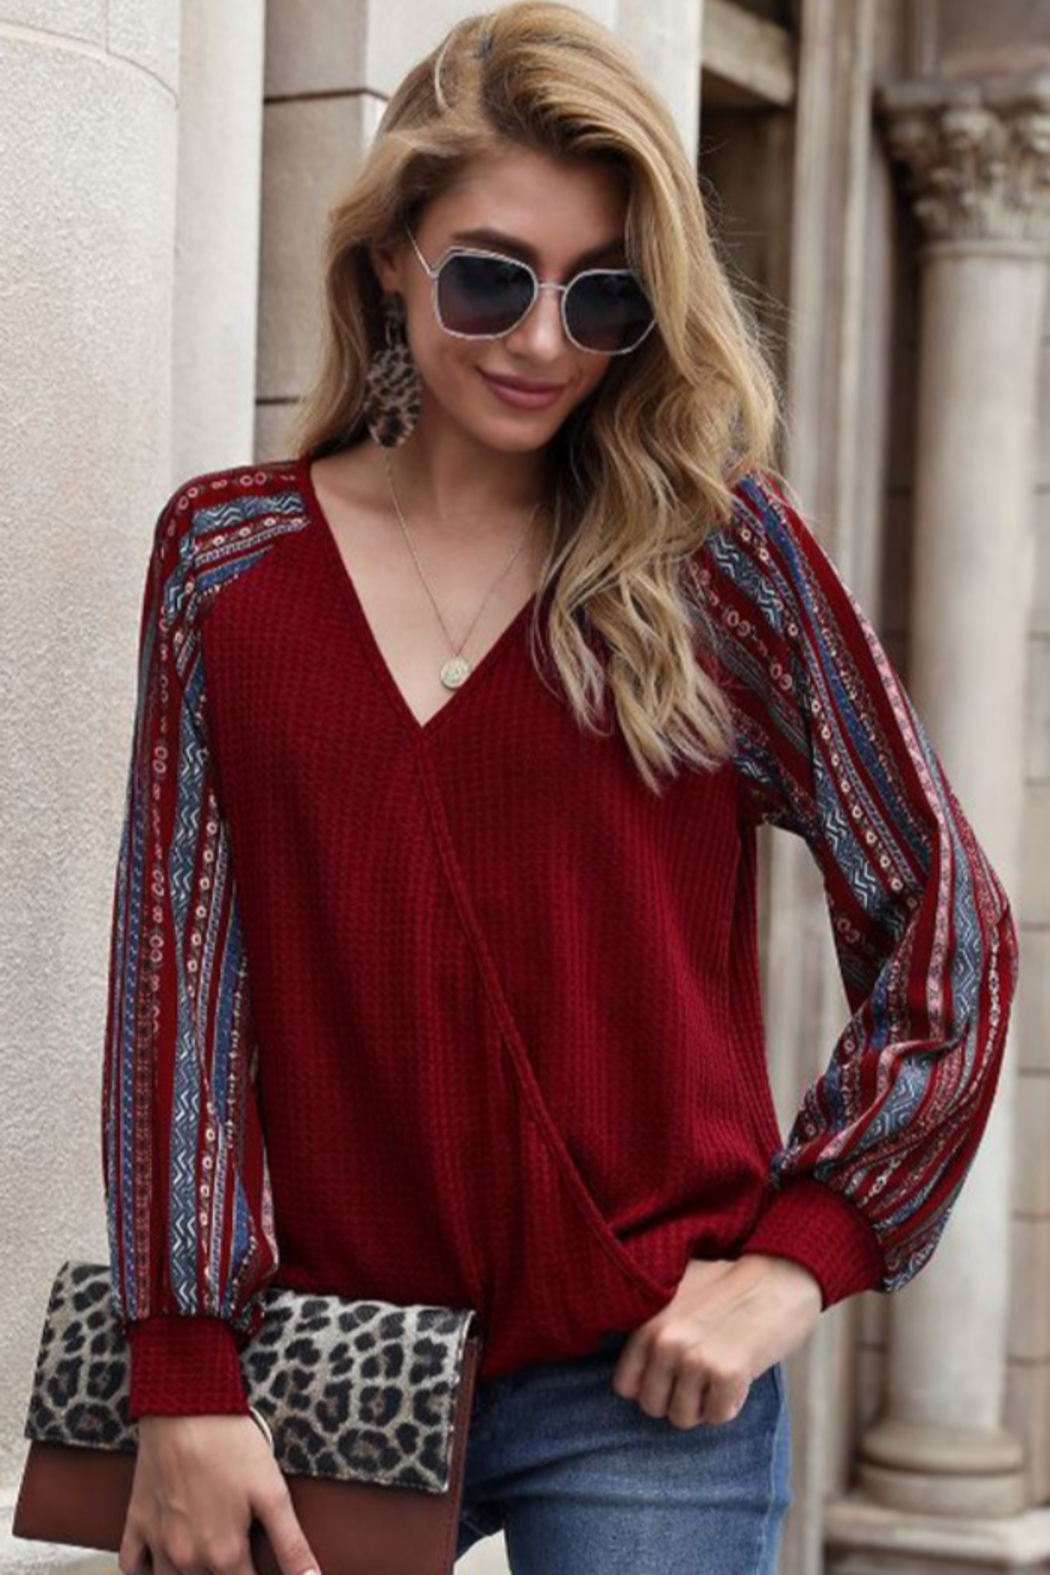 lily clothing Long Sleeve V Neck Top with Printed Sleeves - Front Cropped Image